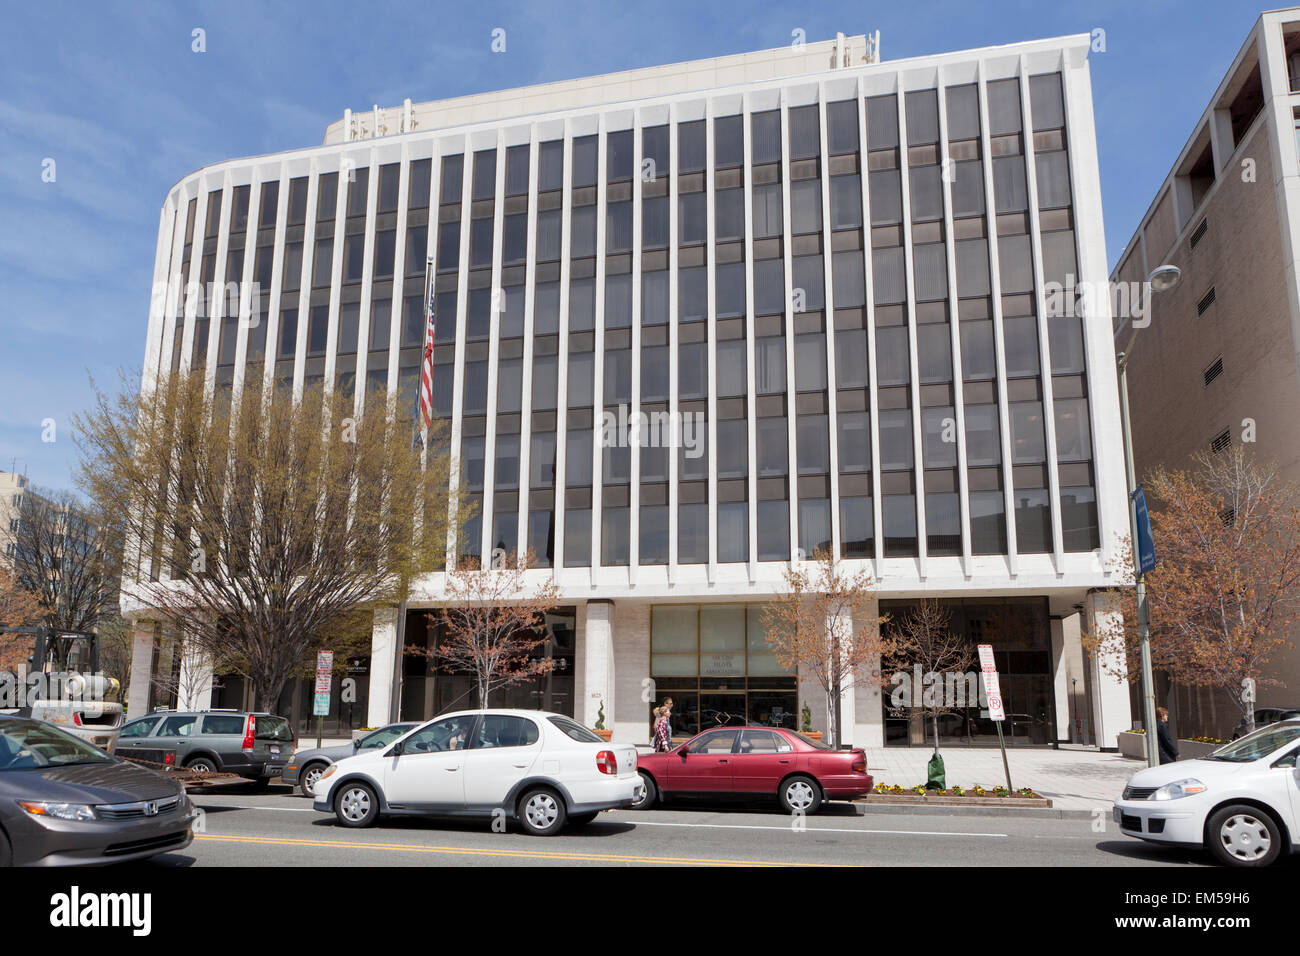 La Air Line Pilots Association, internazionale (ALPA) headquarters building - Washington DC, Stati Uniti d'America Immagini Stock